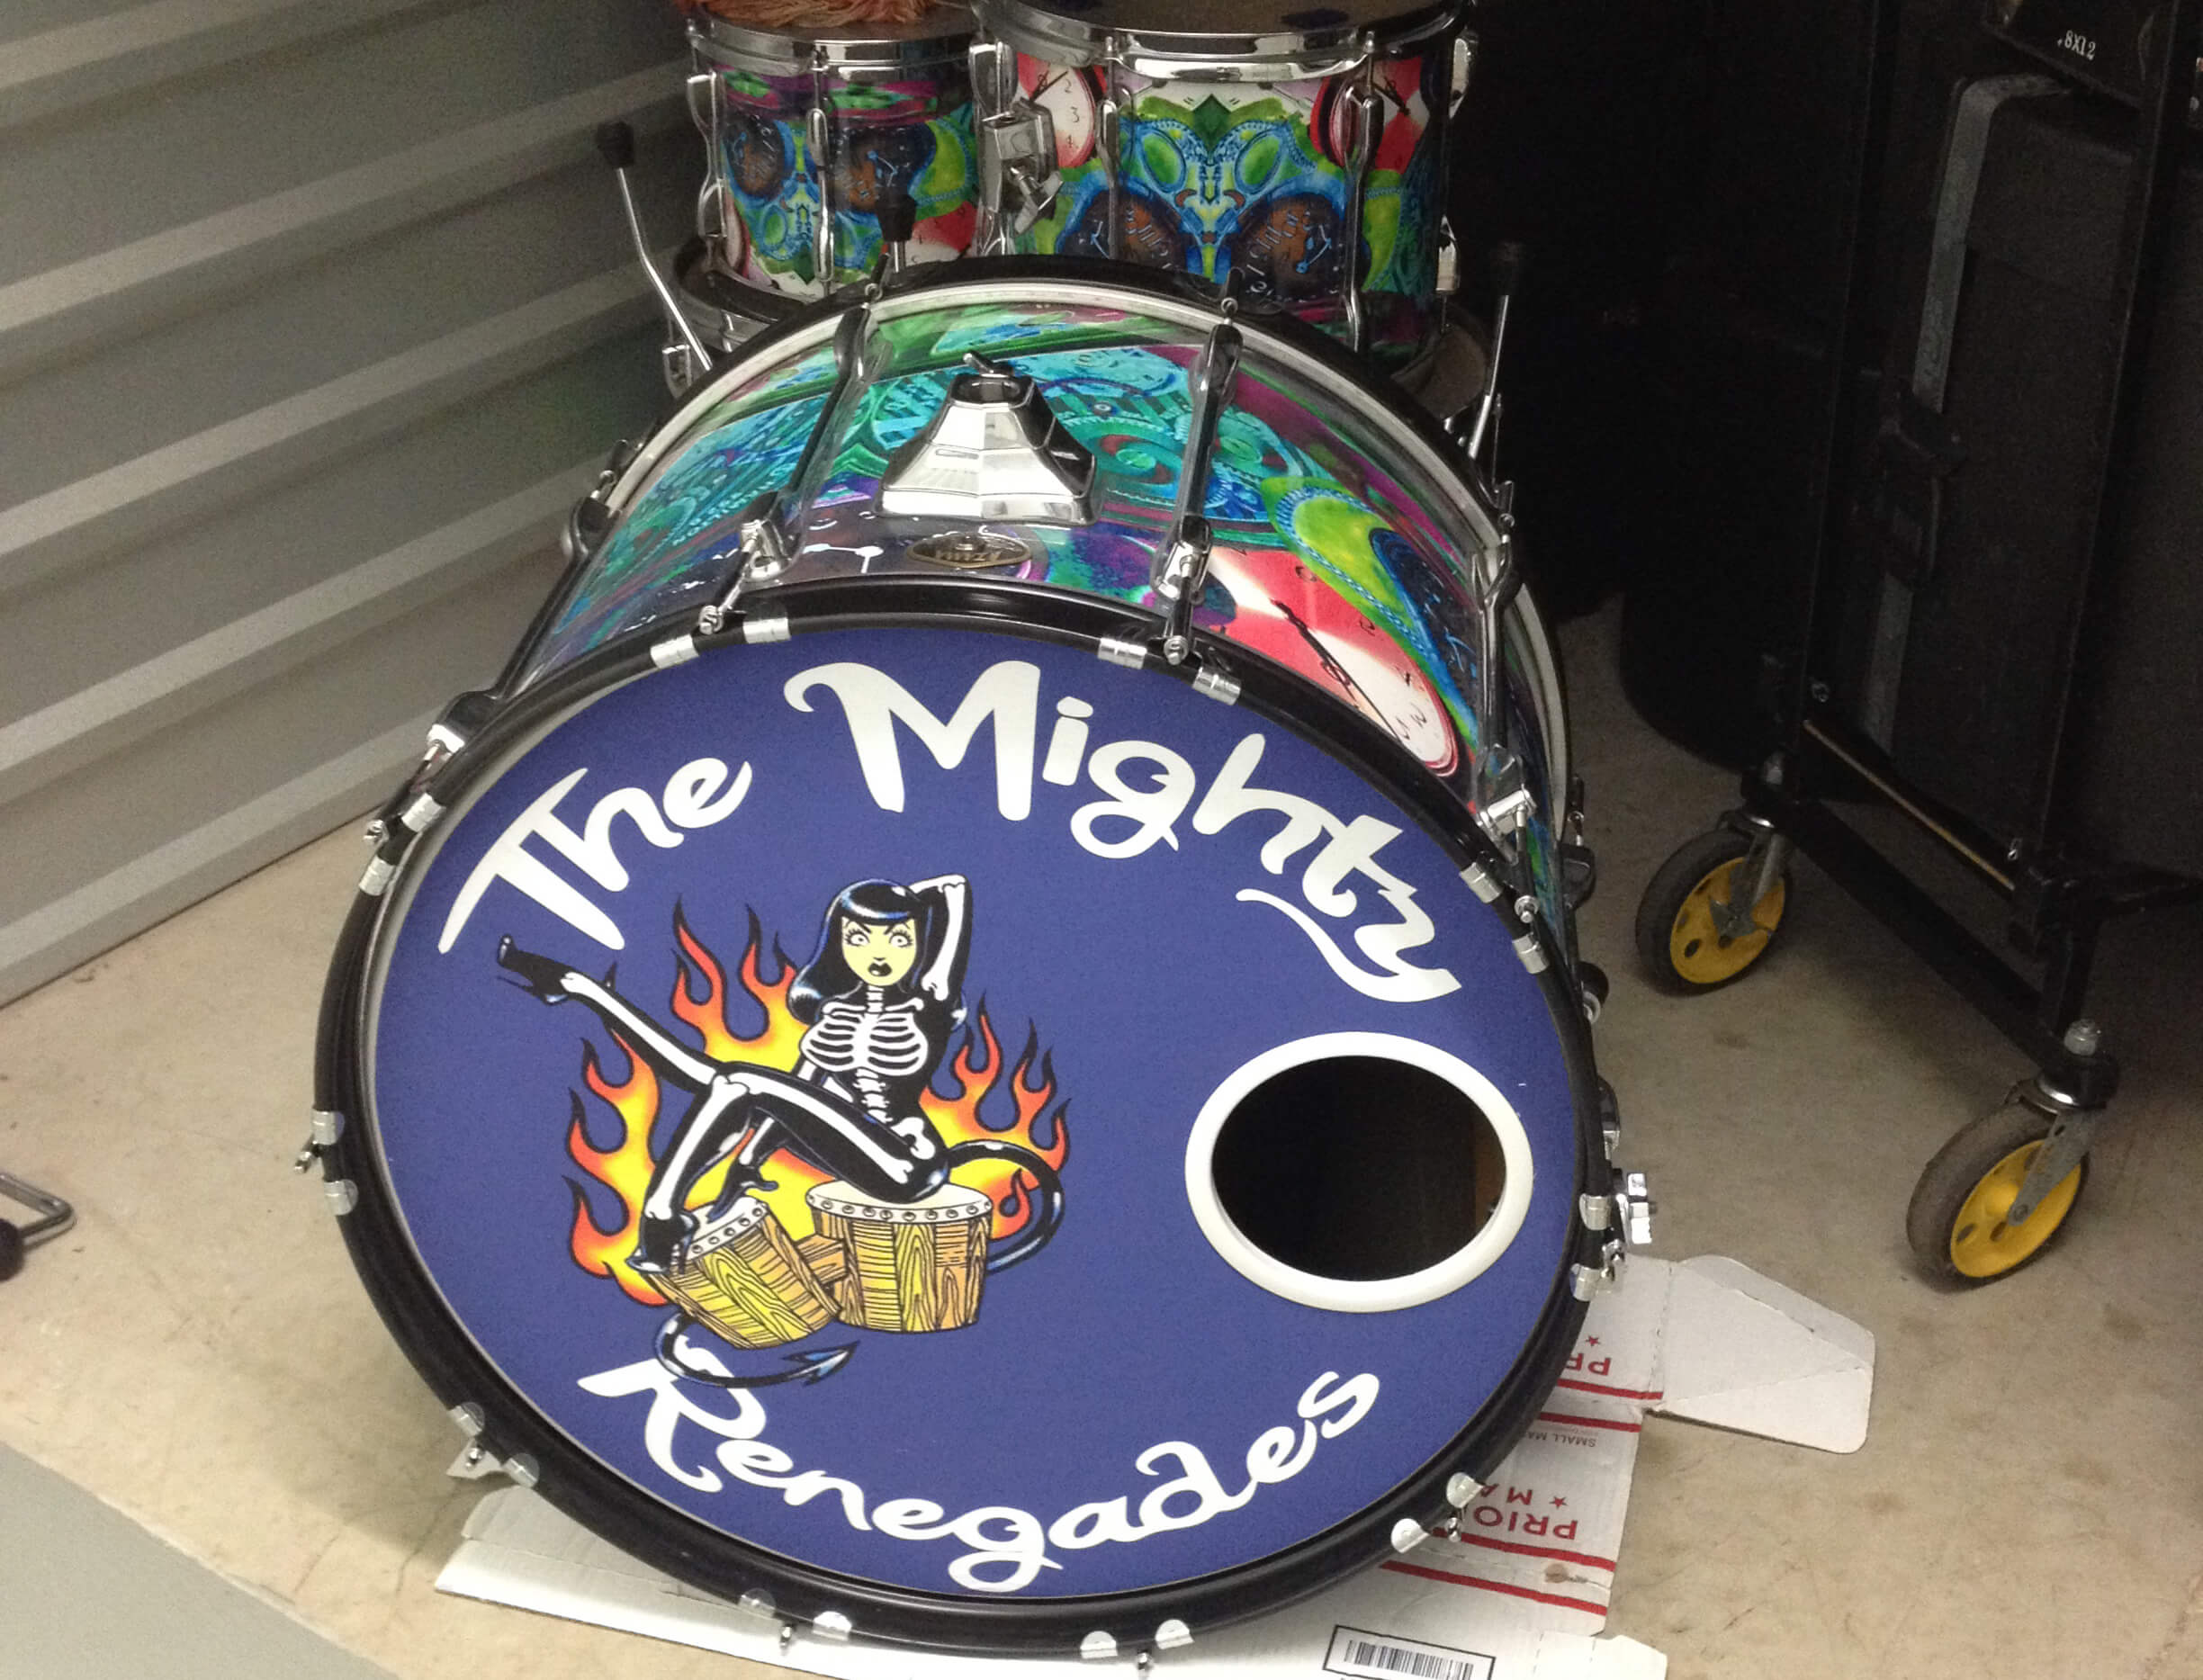 The Mighty Renegades, bass drum removable decal, Bass drum skin, bass drum full color decal, drum skin, sale, cheap price, die-cut, die cut vinyl decals, removable static cling drum decal, music bands, local band